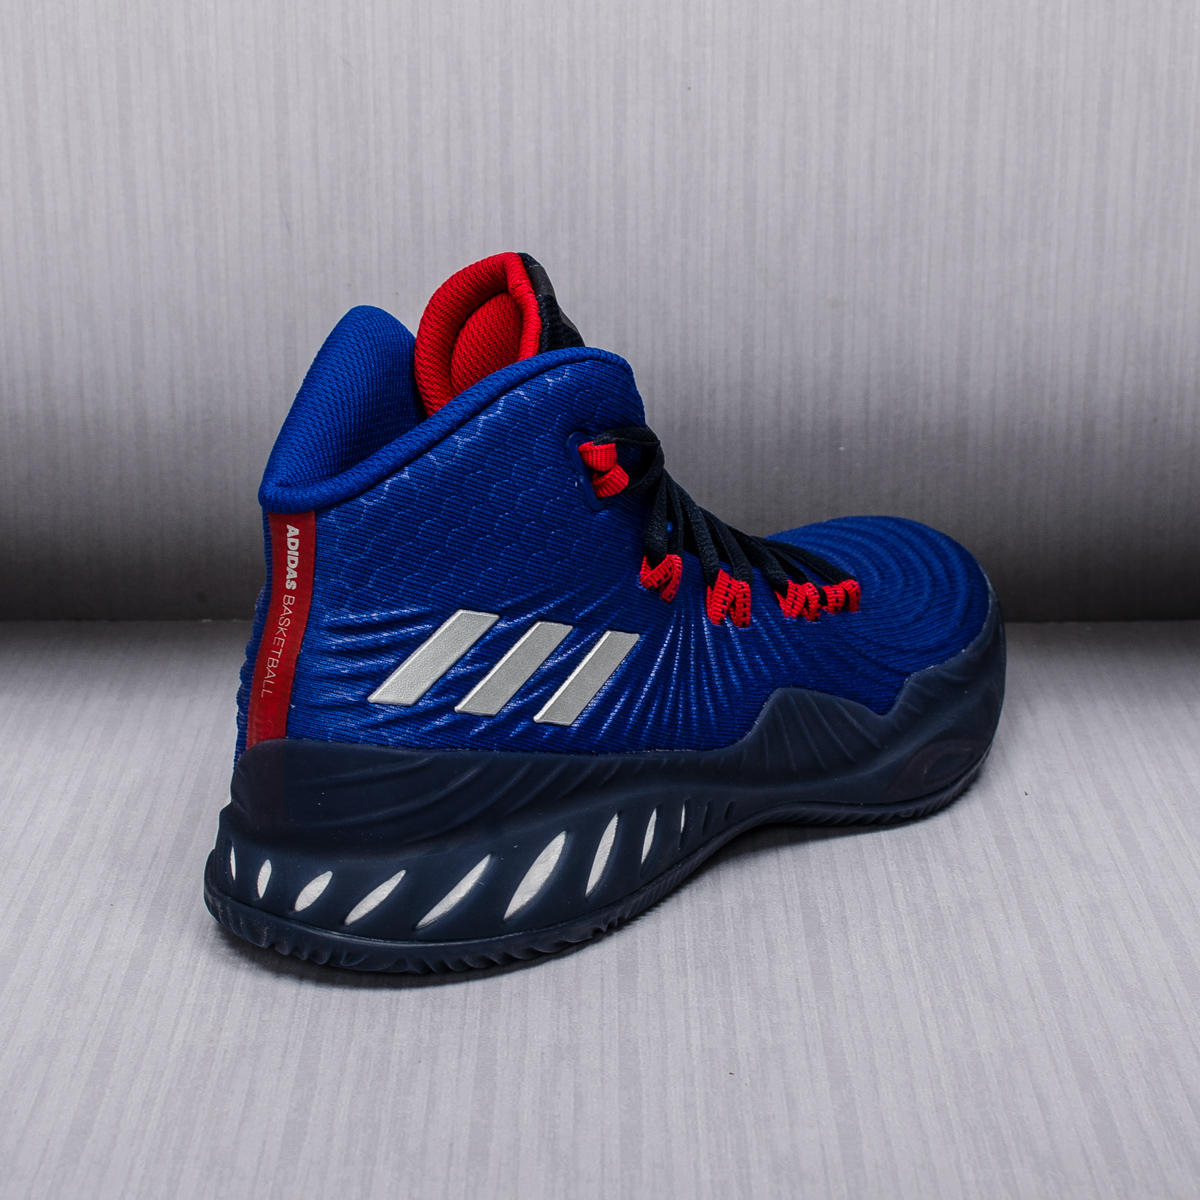 adidas Crazy Explosive 2017 size 44.5 - BASKETBALL SHOES ...